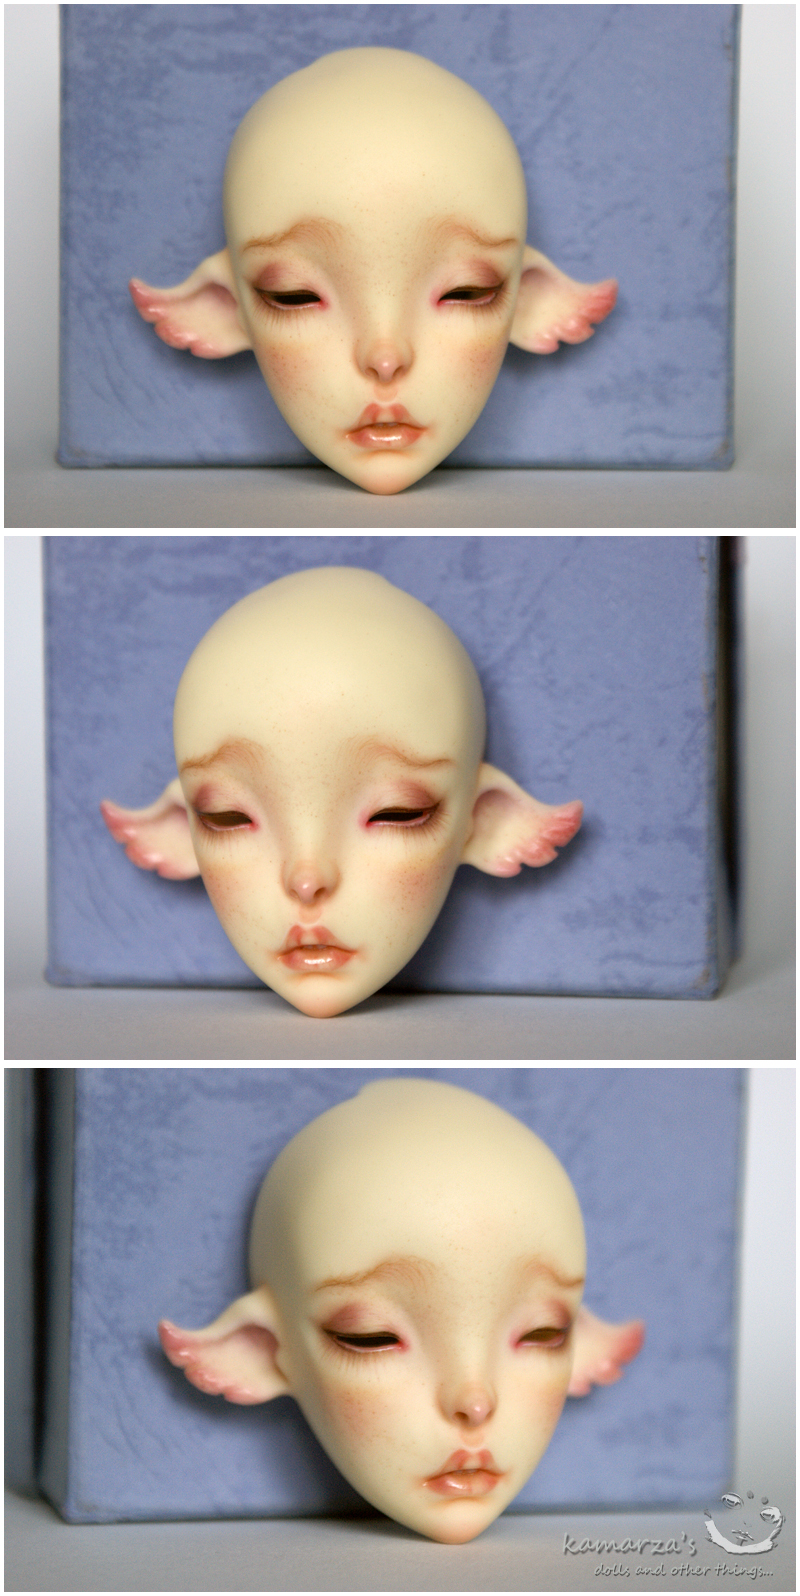 Cerisedoll Ombre faceup commission by kamarza